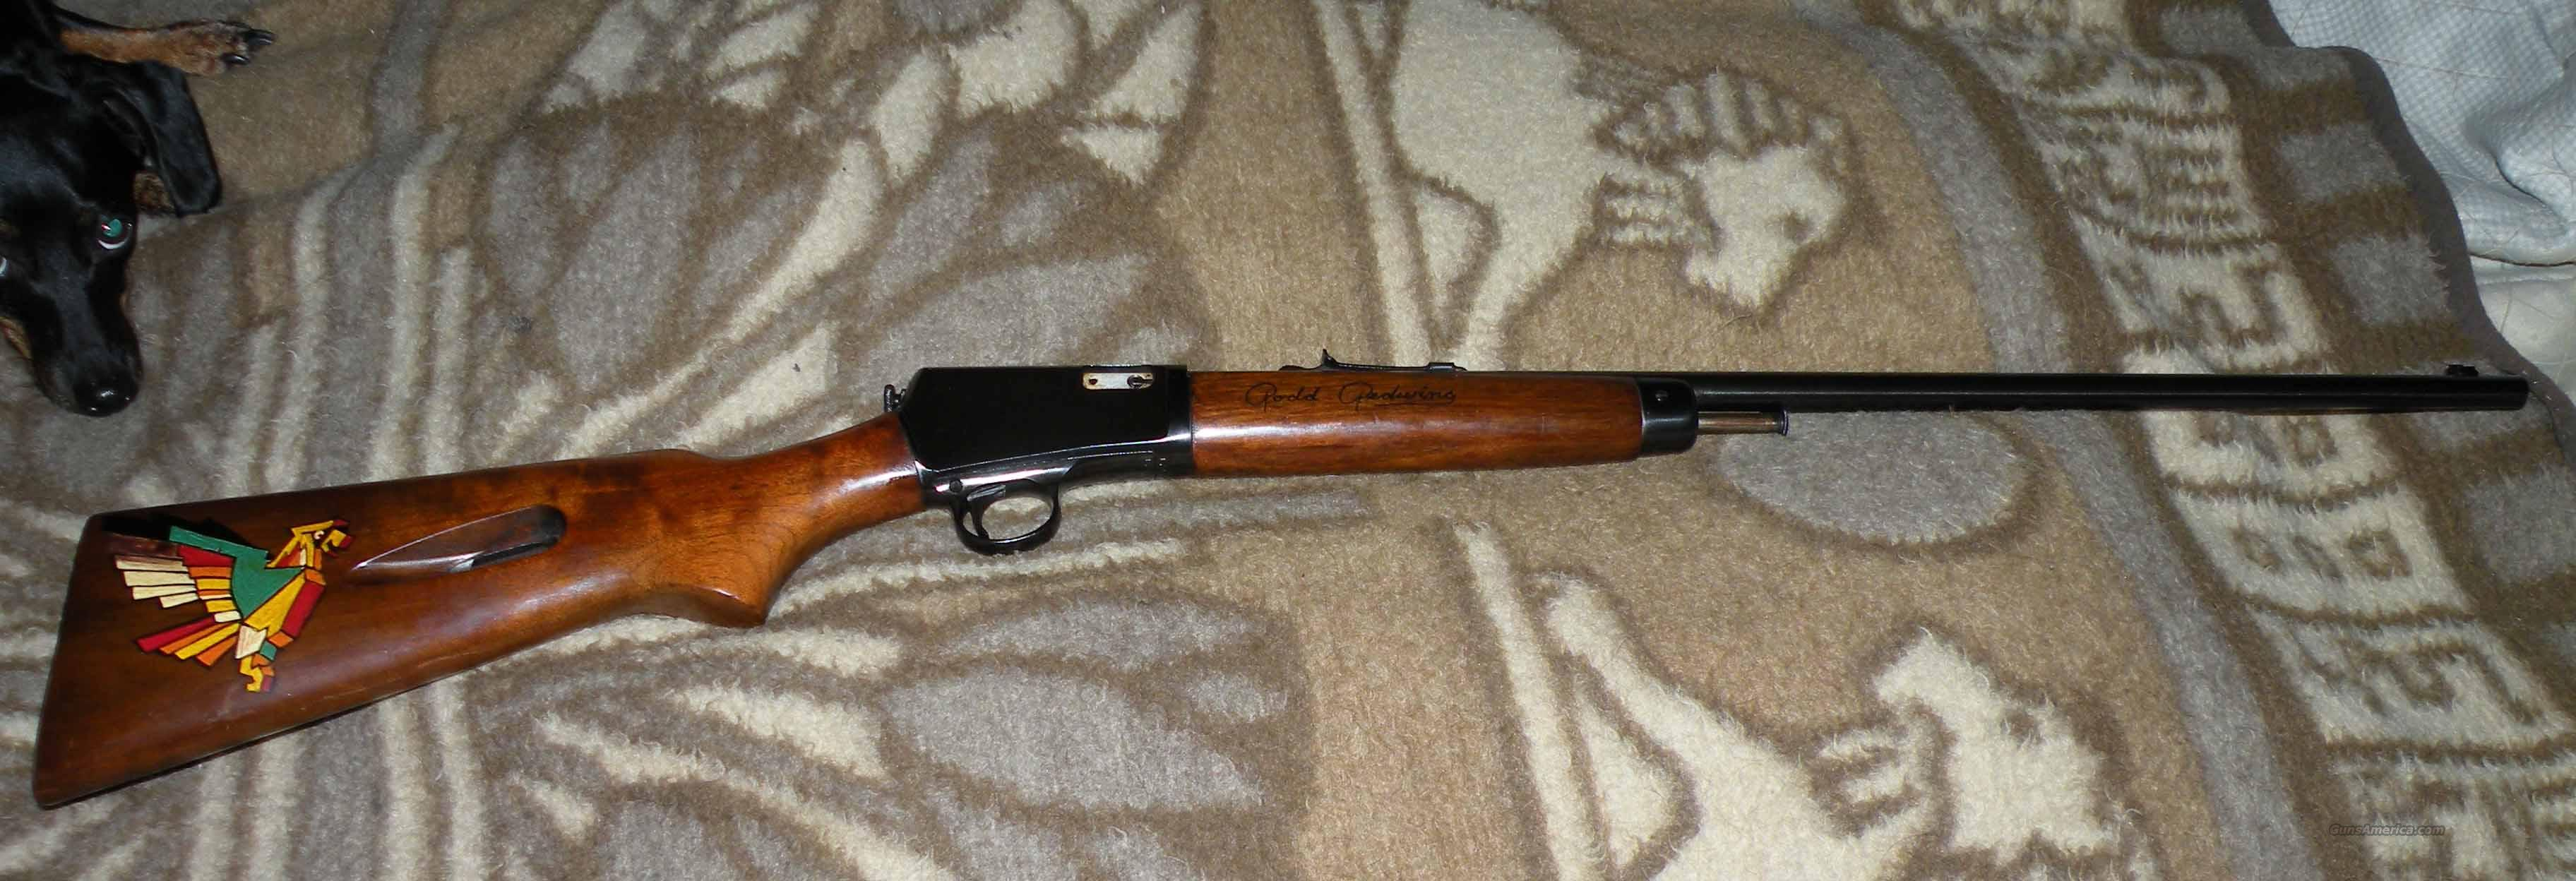 Winchester 63 Grooved - Chief Rodd Redwing  Guns > Rifles > Winchester Rifles - Modern Bolt/Auto/Single > Autoloaders